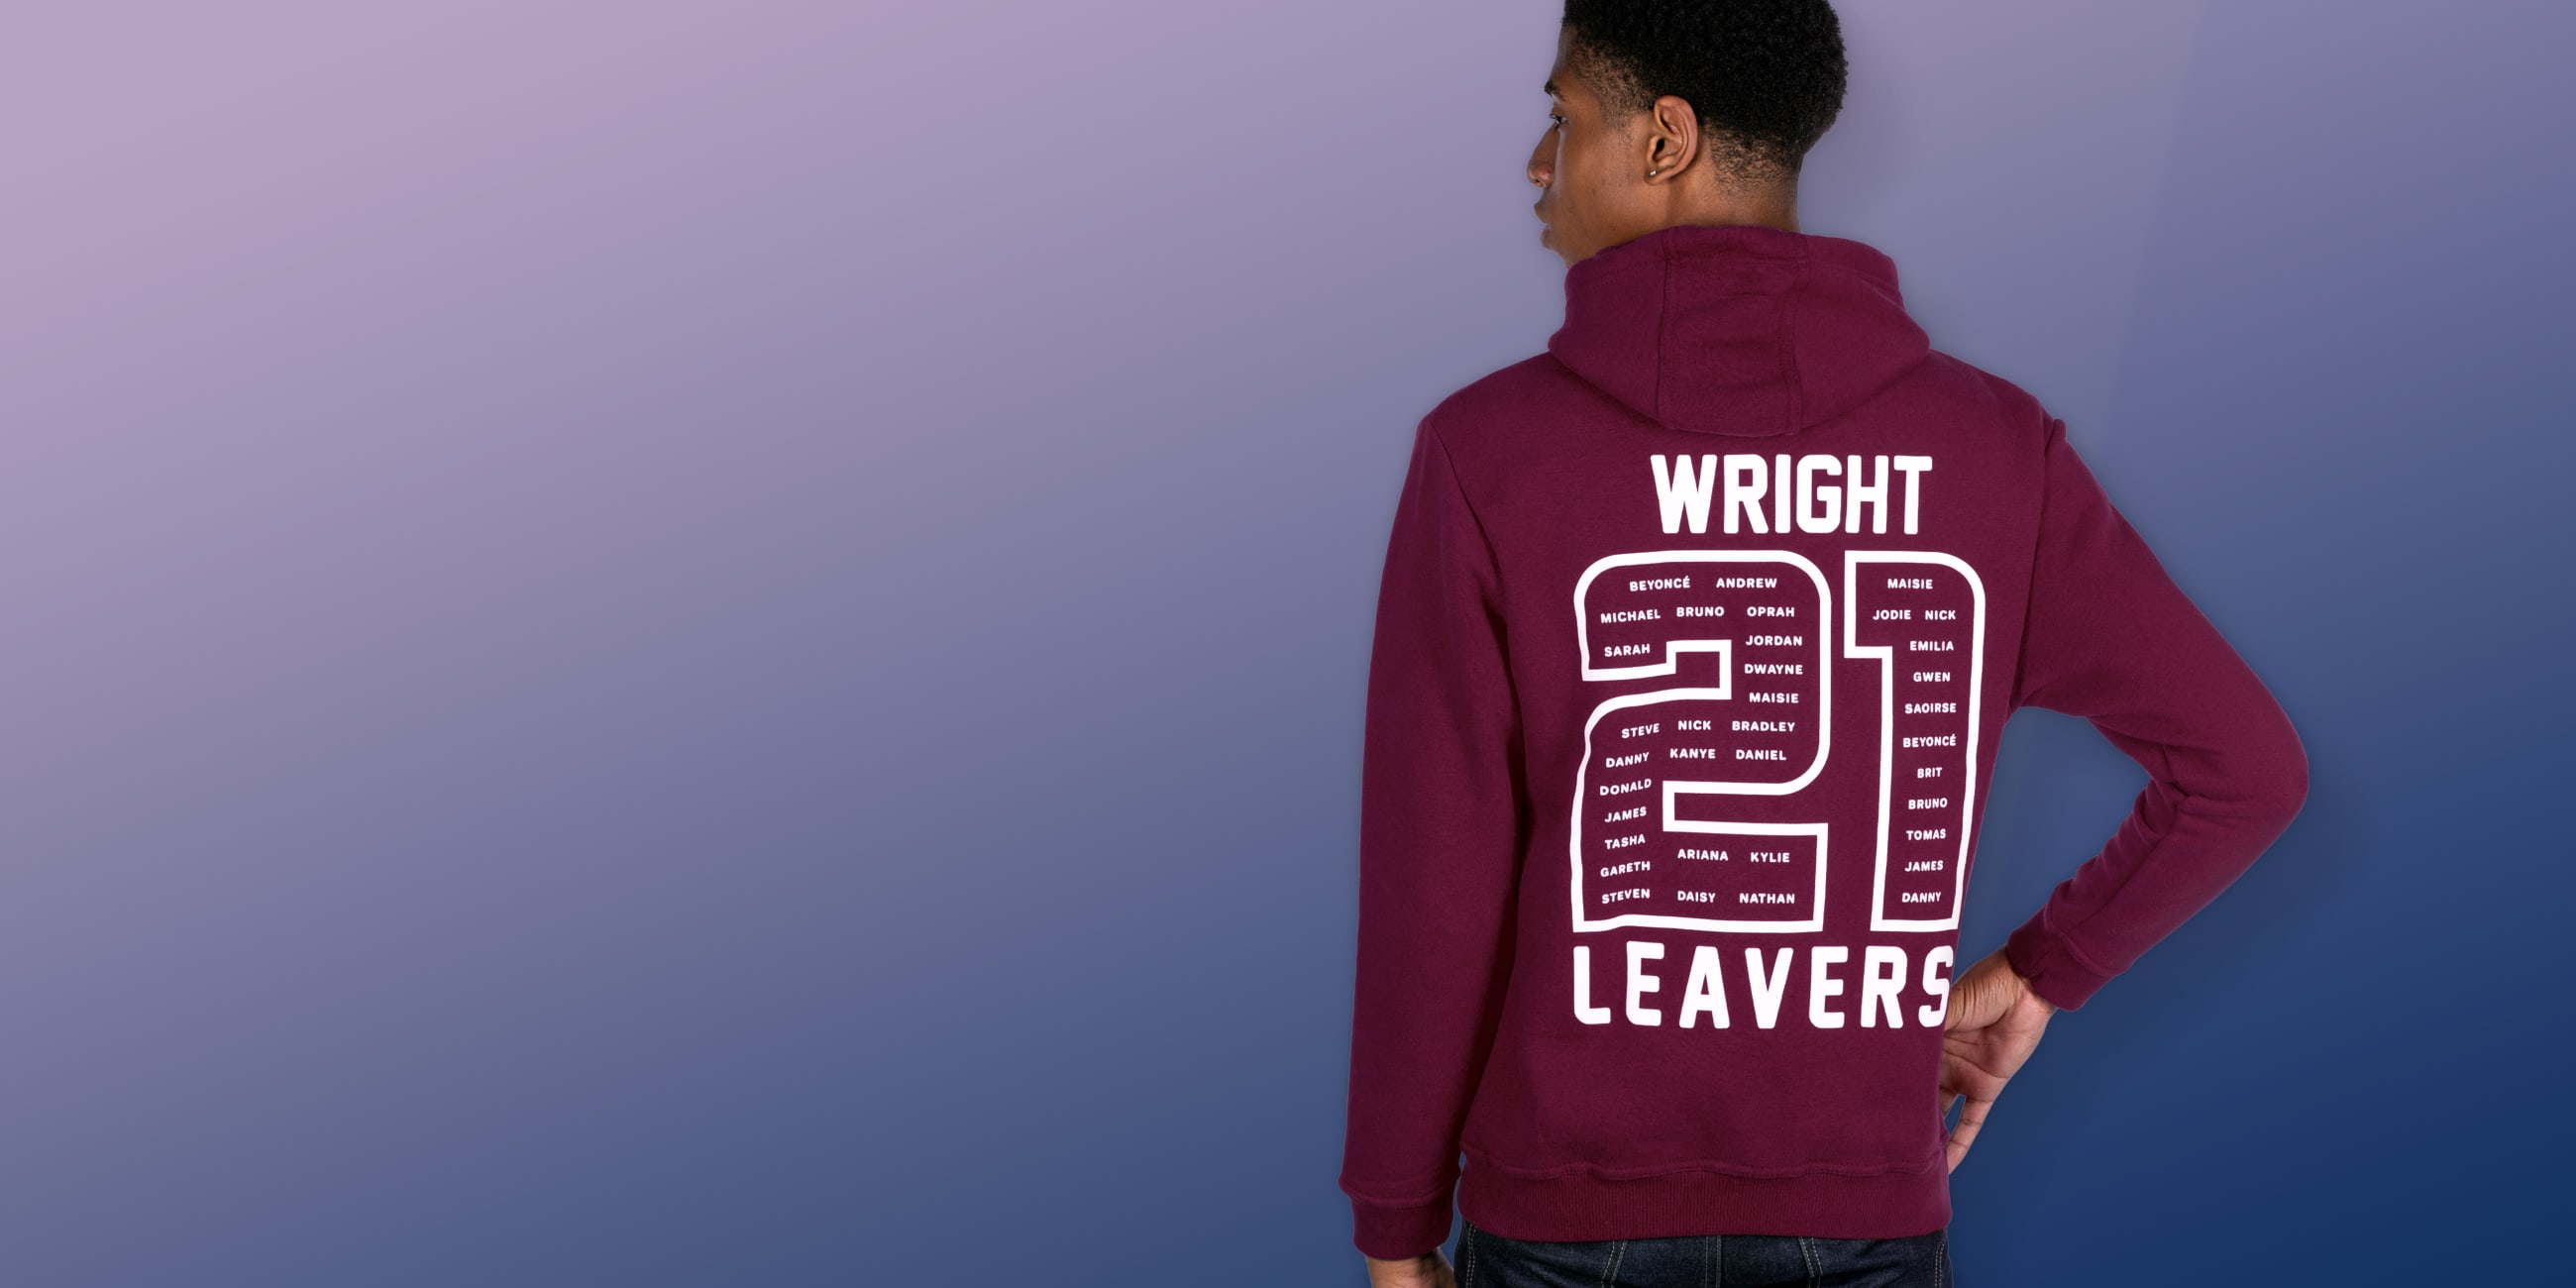 Leavers hoodies with names, nicknames, initials and personalisation